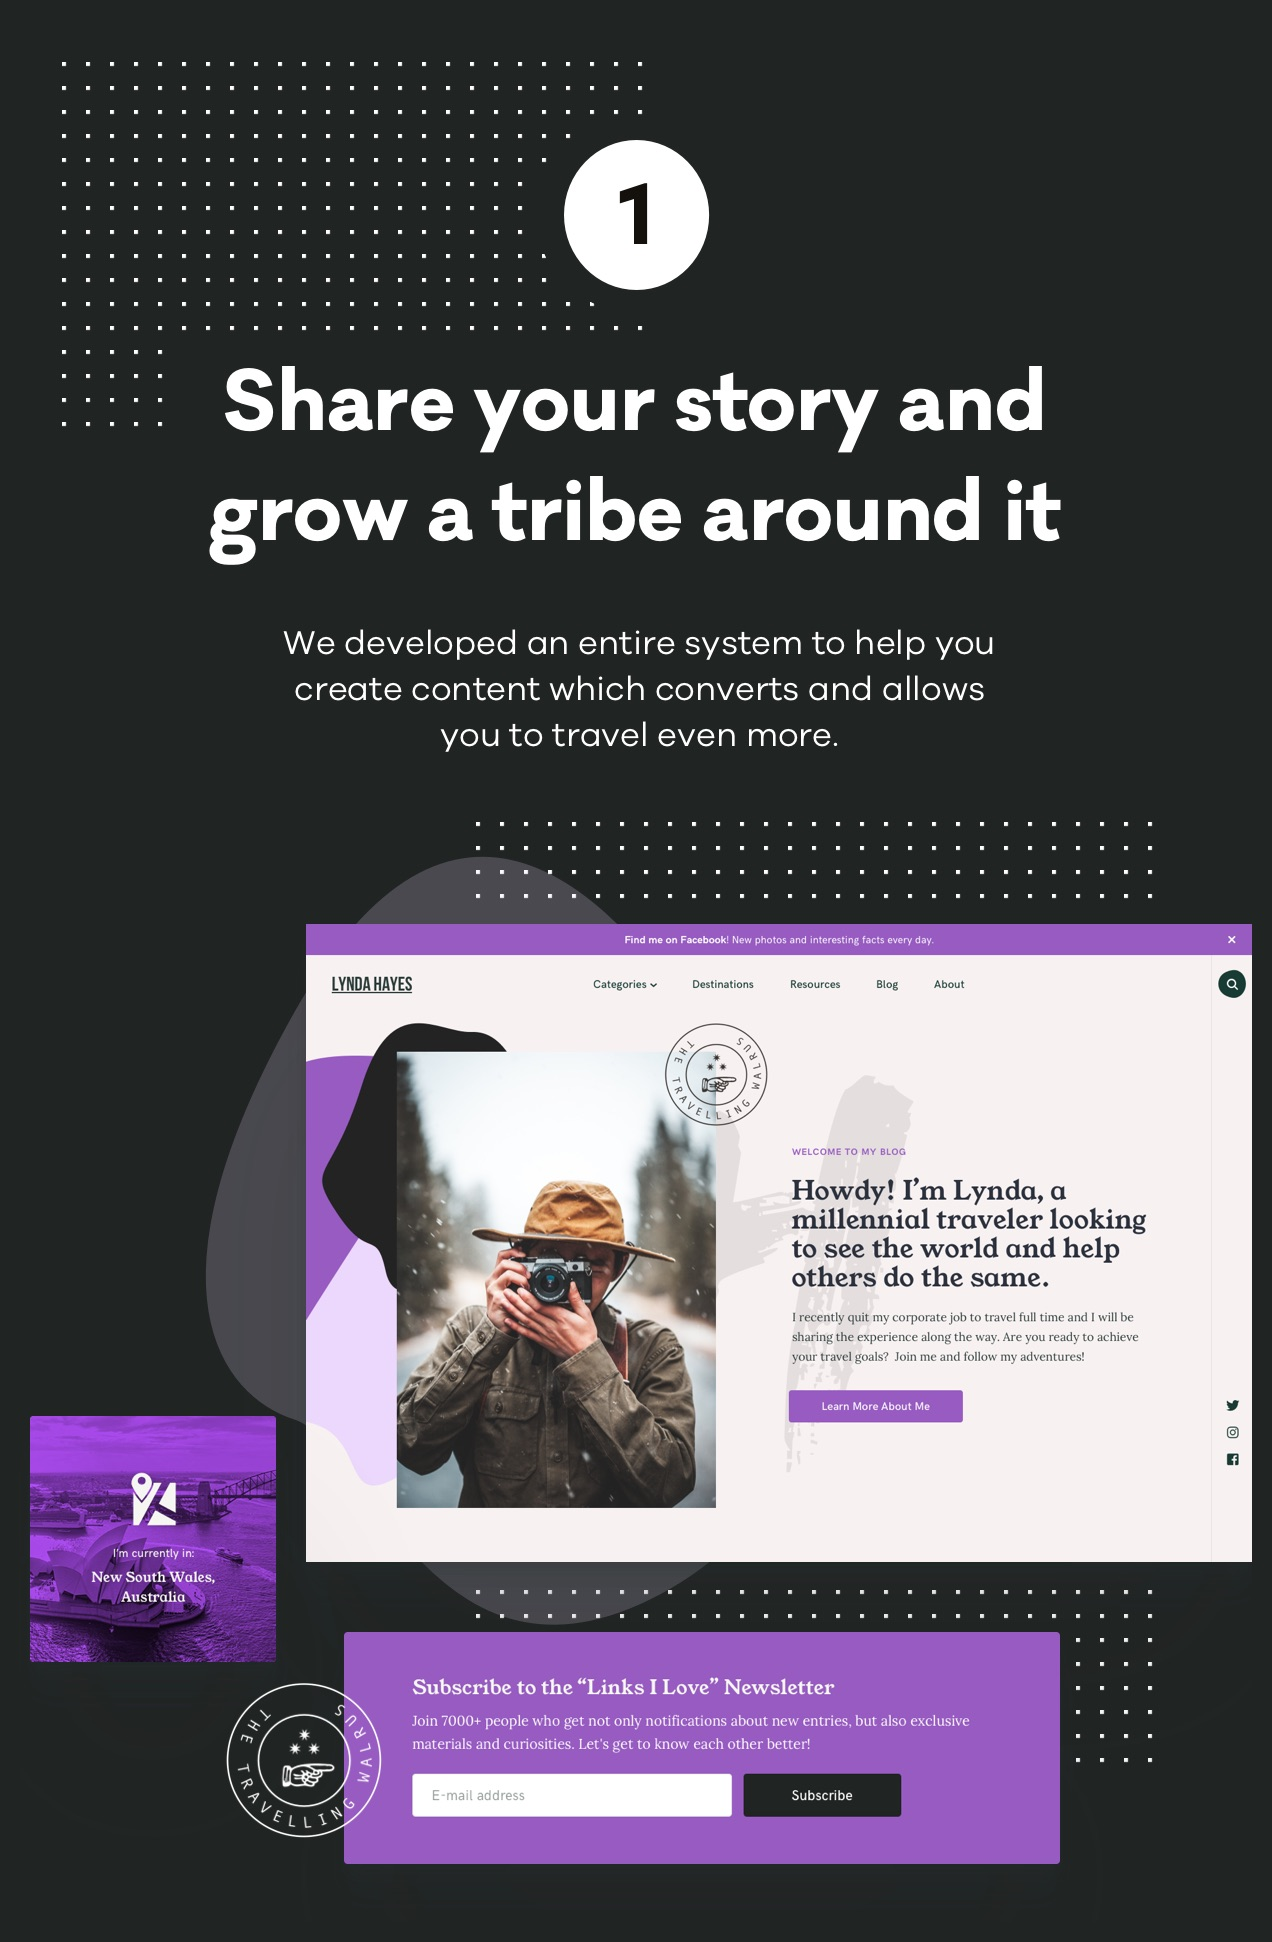 Share your story and grow a tribe around it